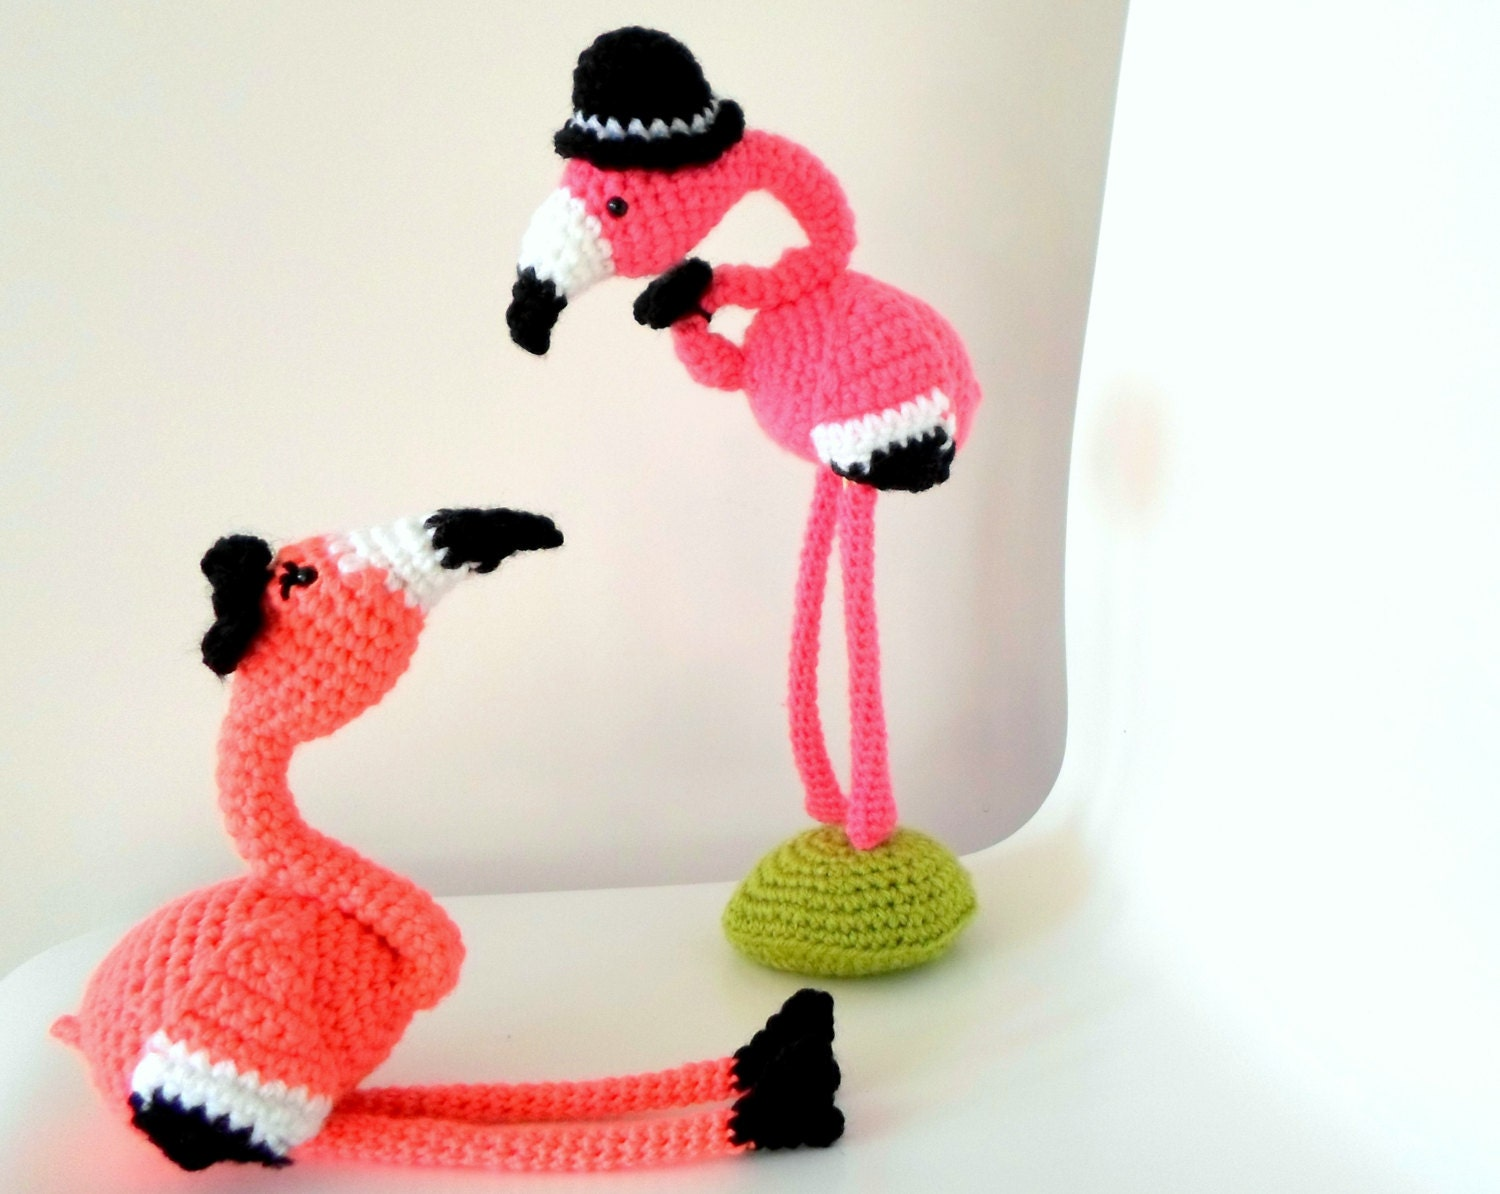 Mr & Mrs Flamingo crochet amigurumi pdf pattern INSTANT